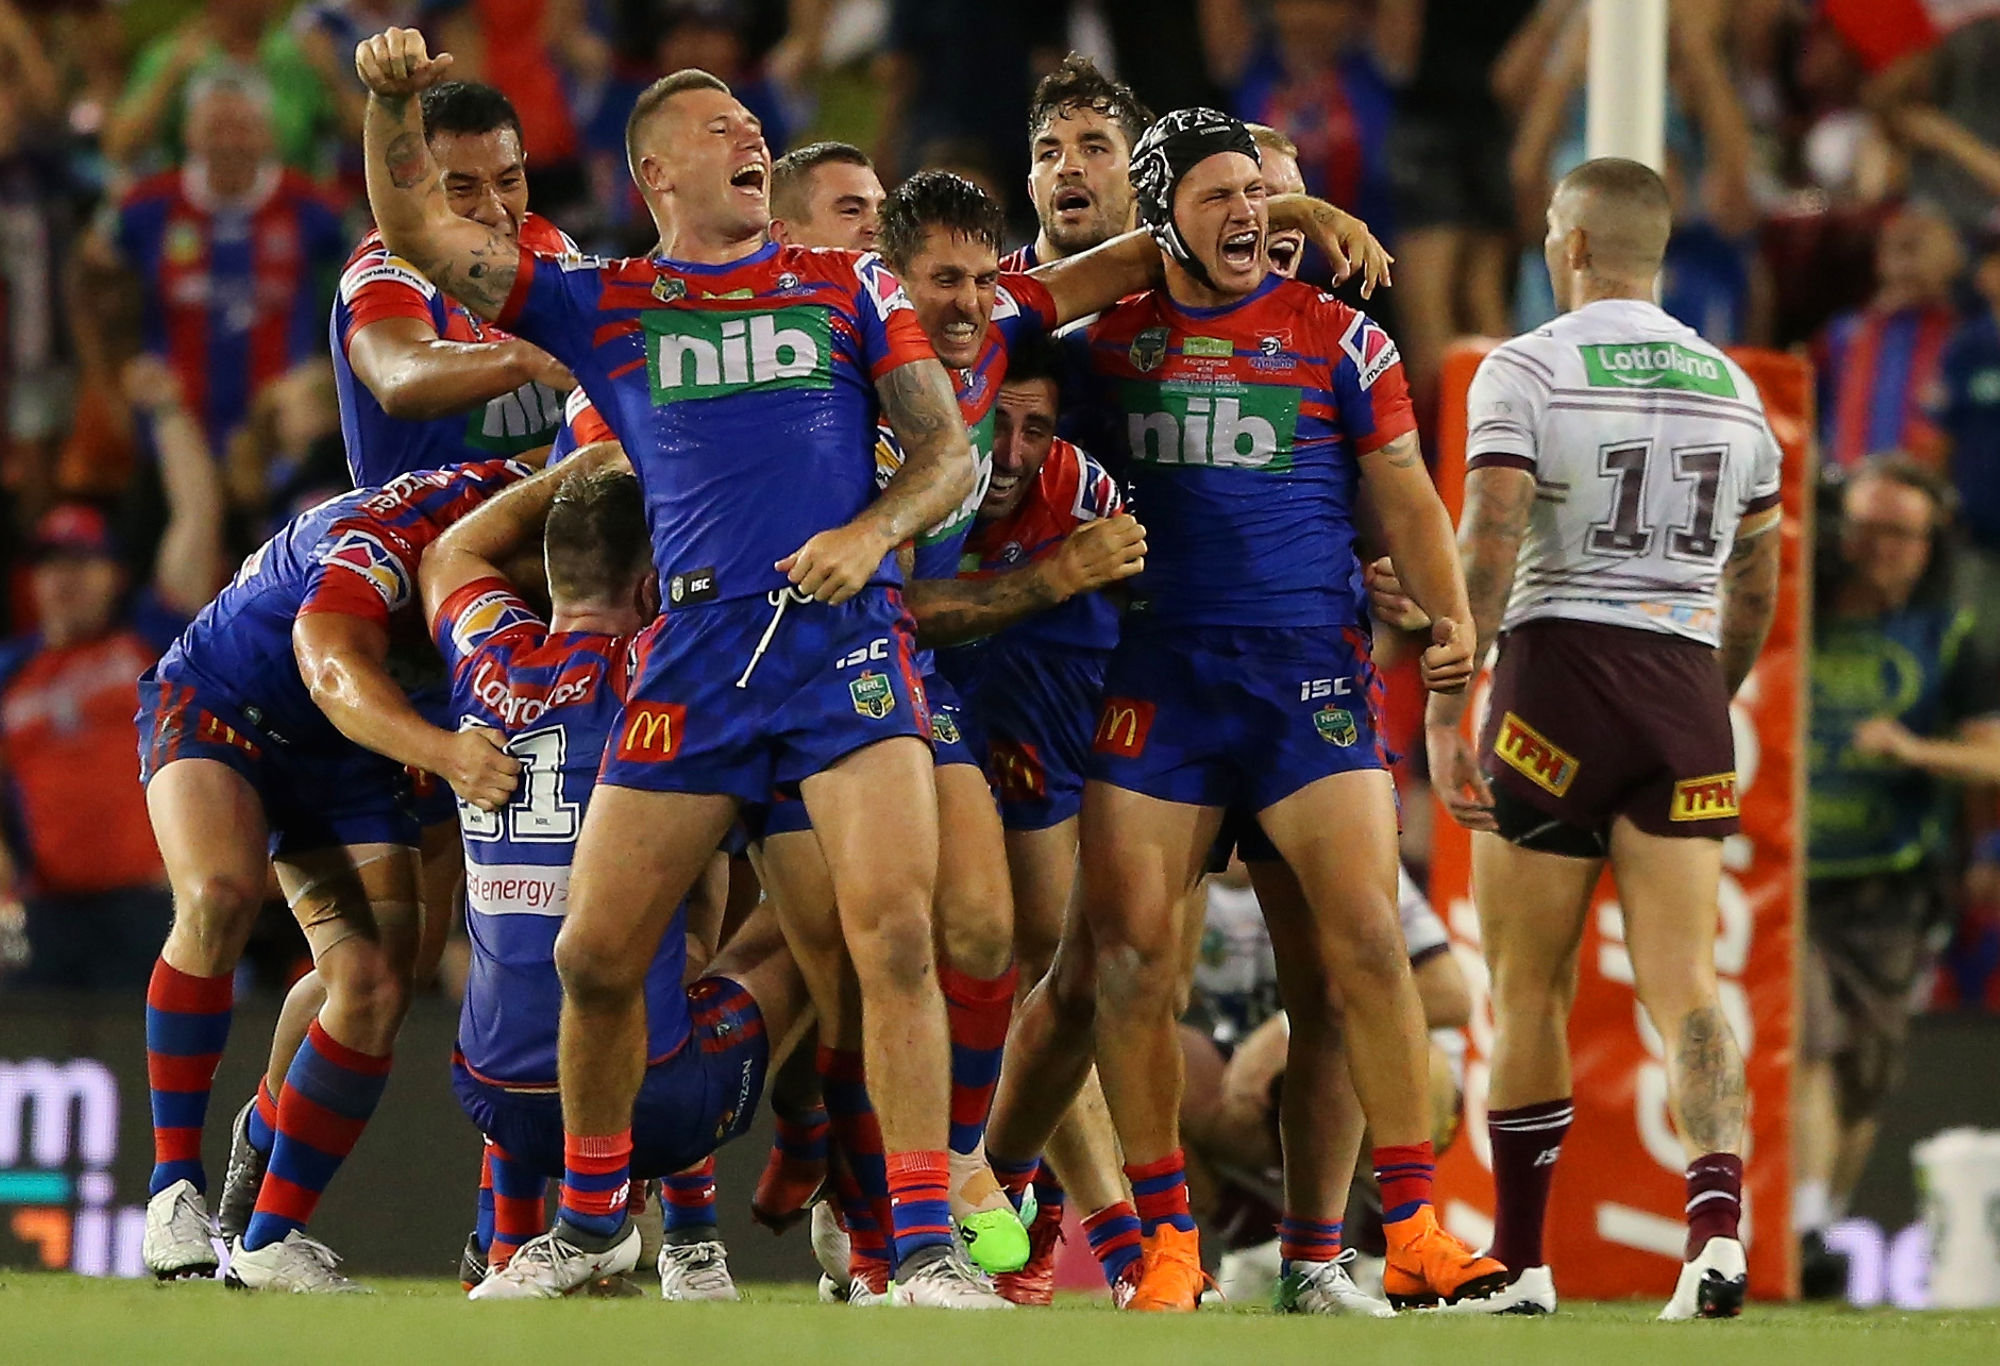 Newcastle Knights